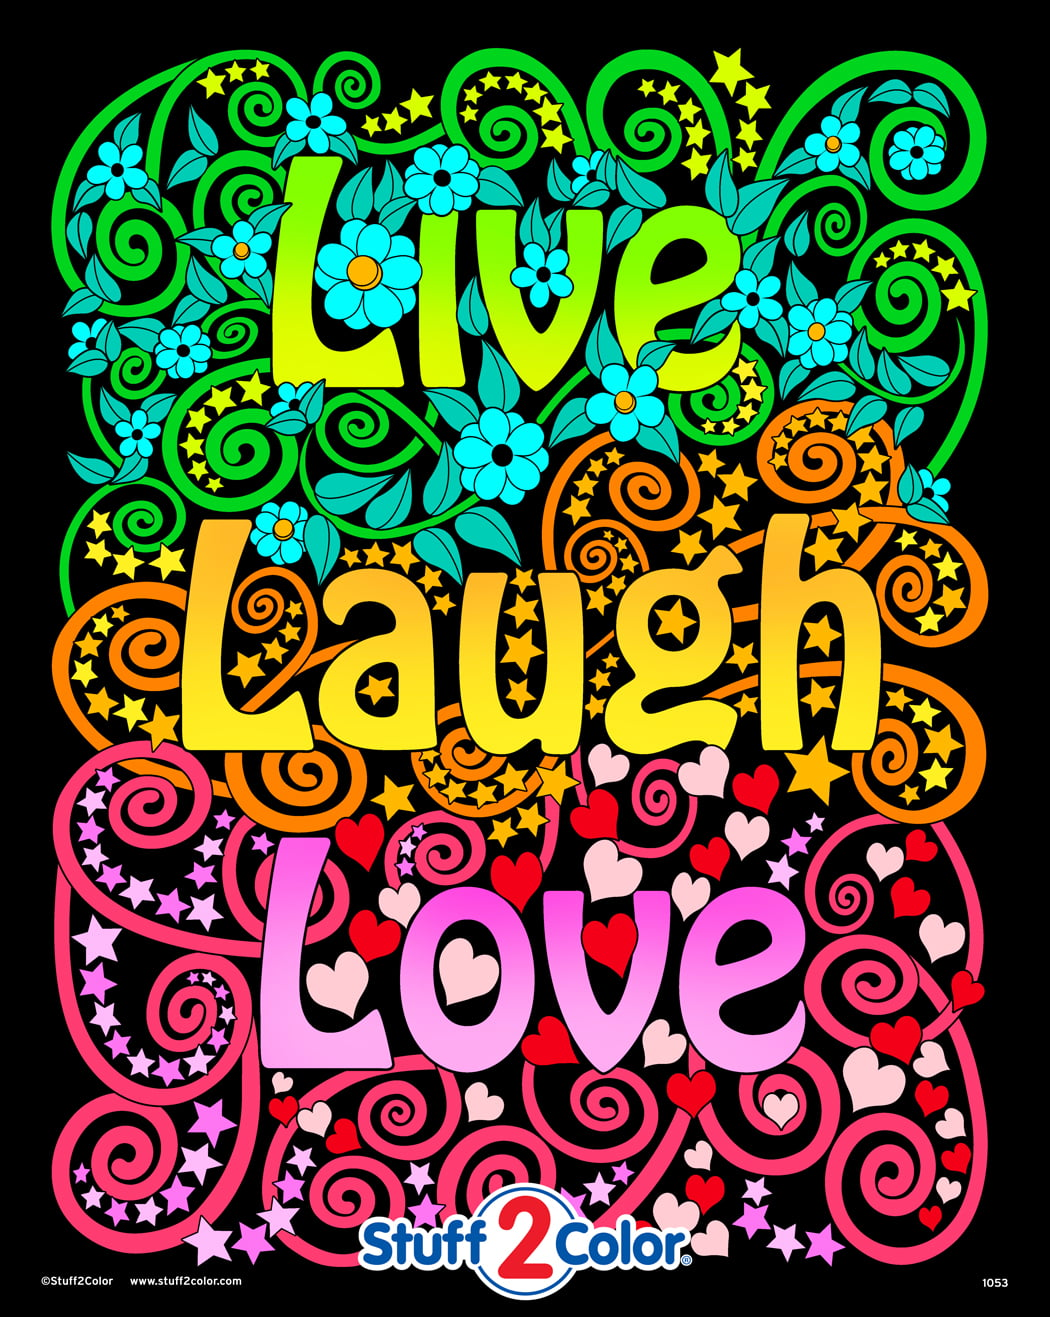 Live Laugh Love - Fuzzy Velvet Coloring Poster For Kids, Toddlers And Adults  (Excellent Quiet Time Arts And Crafts Activity) - Arrives Uncolored -  Walmart.com - Walmart.com